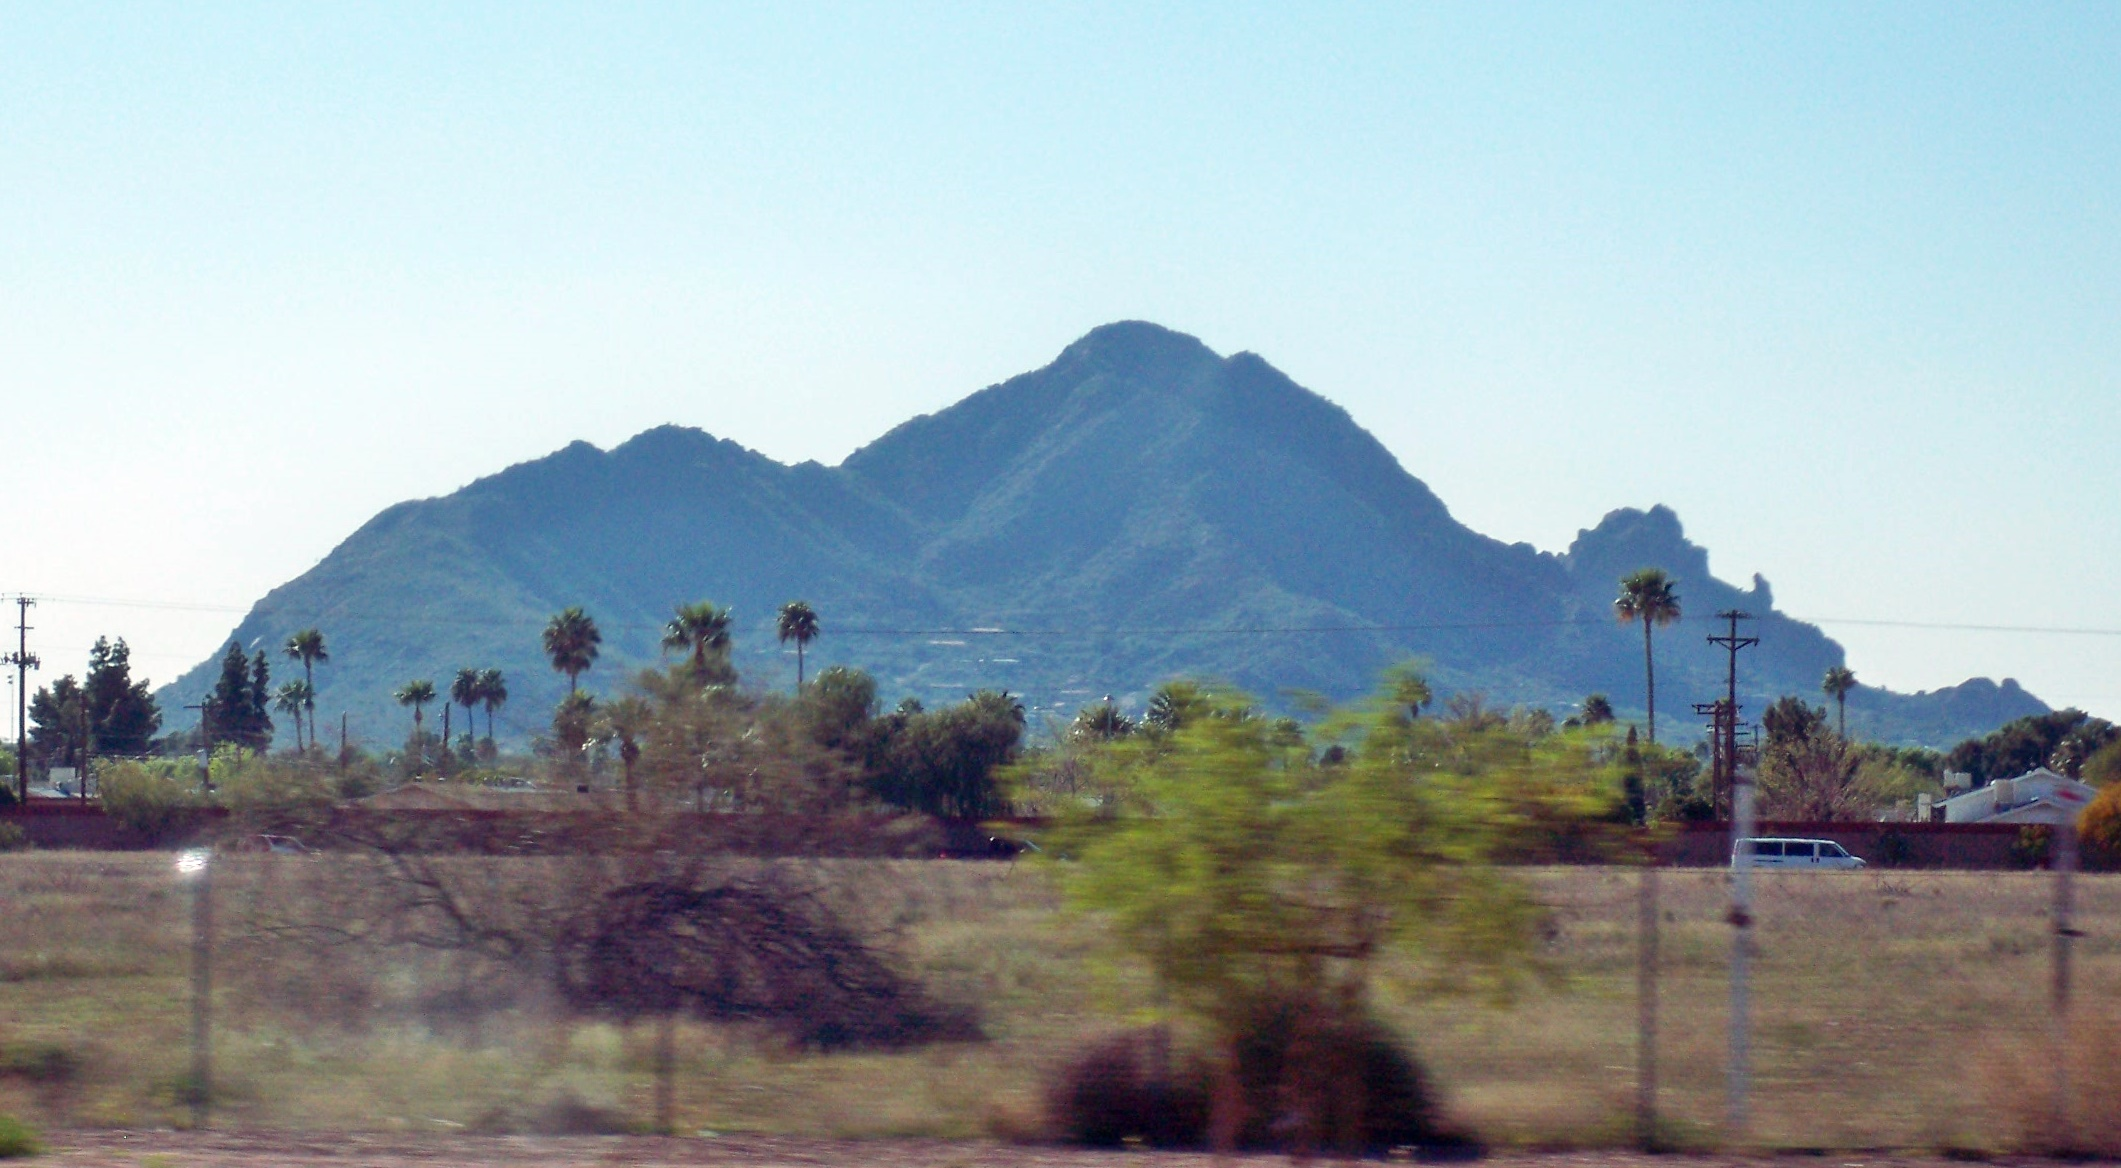 driving past camelback mountain in arizona